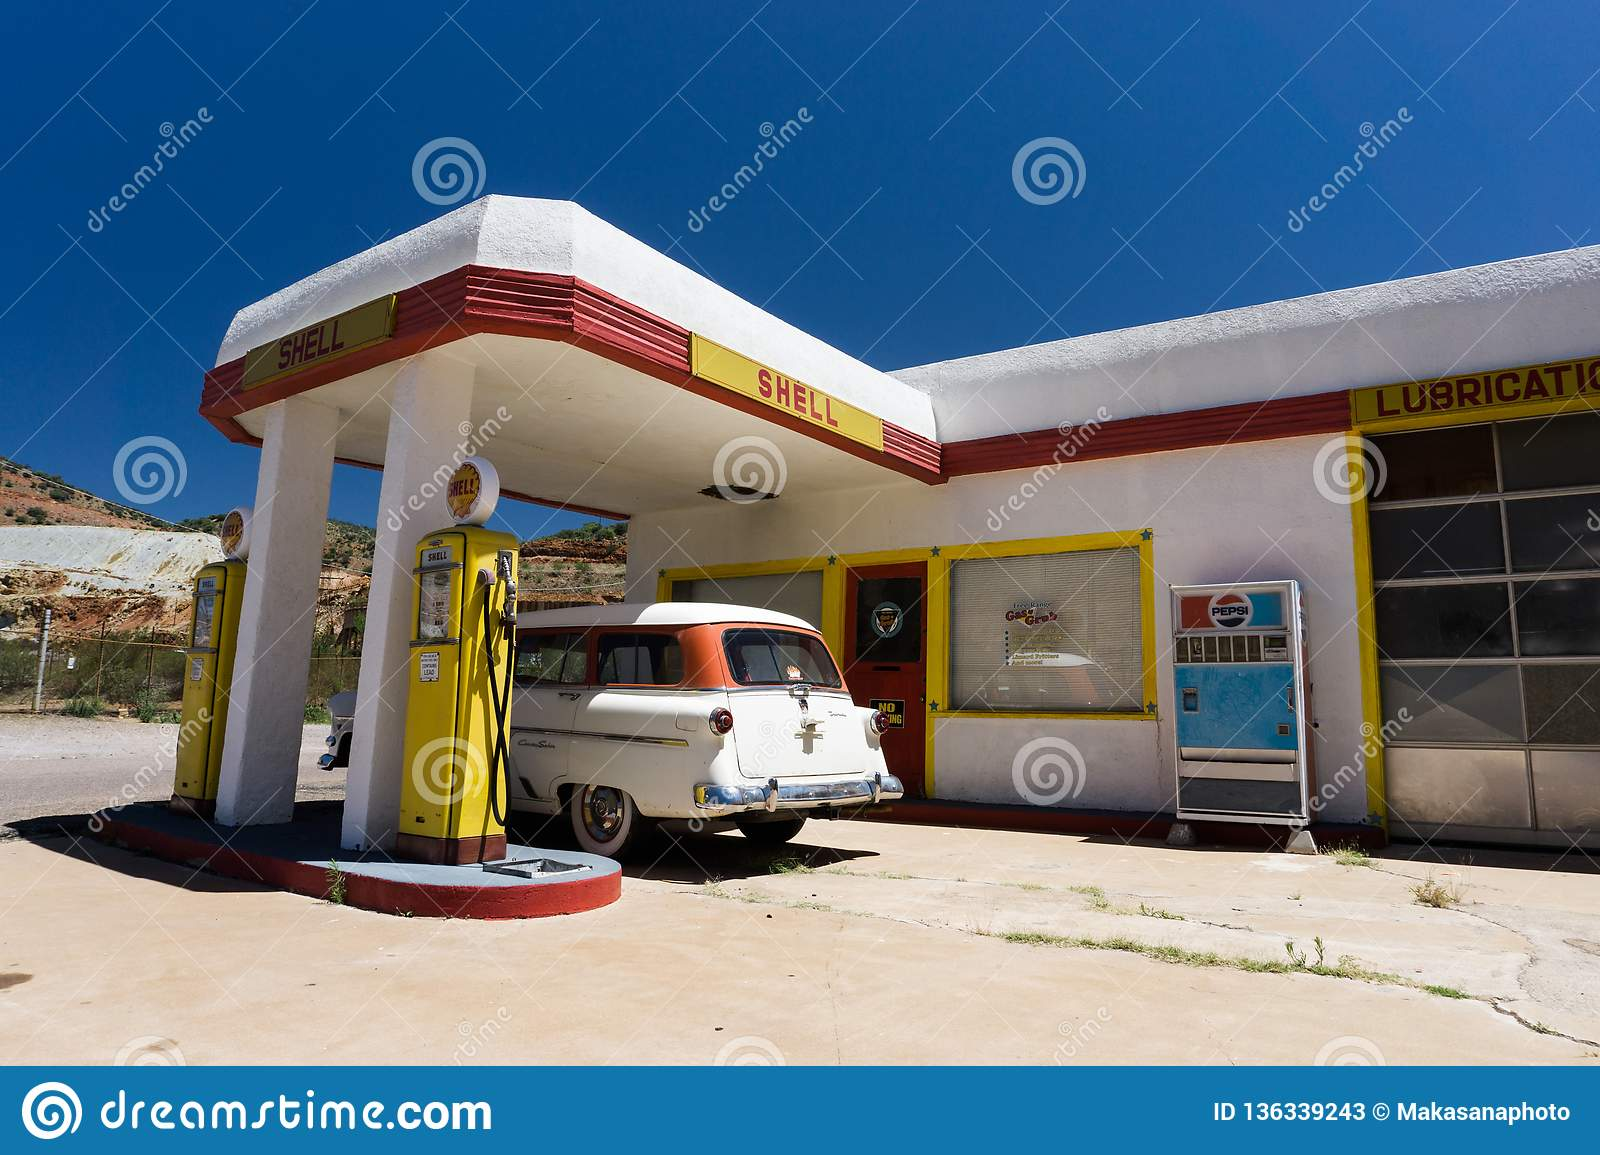 Lowell Az Usa July 12 2016 Old Fuel Pump And Classic Car At An Abandoned Ghost Town Gas Station Editorial Stock Photo Image Of Lowell Pump 136339243